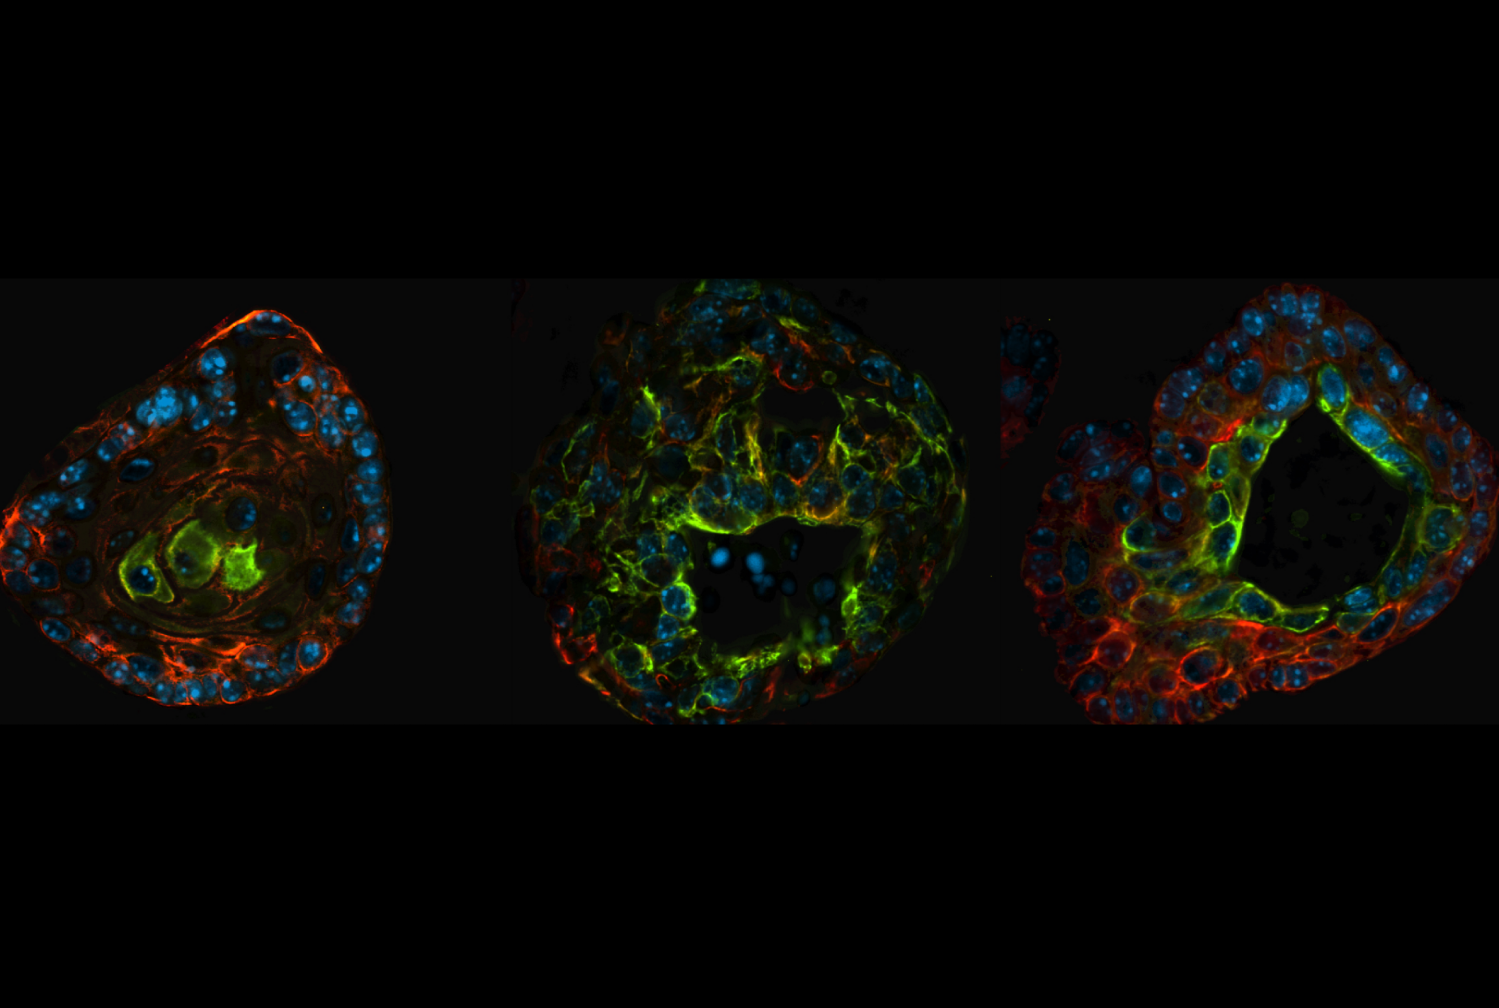 Prostate organoids from genetically engineered mouse models. Image credit: Mirjam Blattner and Dennis Huang